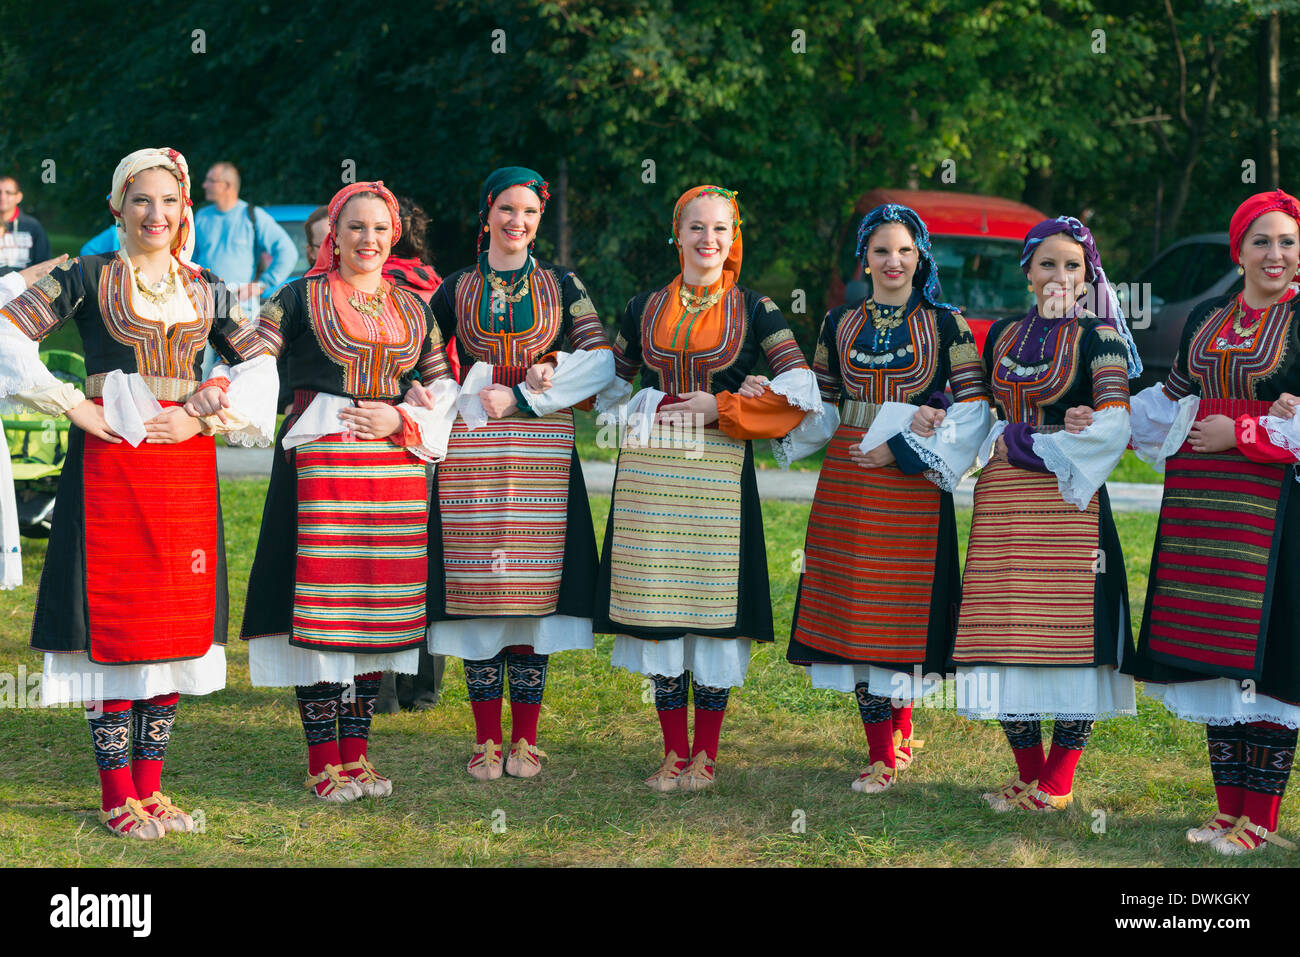 Performers from Serbia in costume, International Festival of Mountain Folklore, Zakopane, Carpathian Mountains, Poland - Stock Image